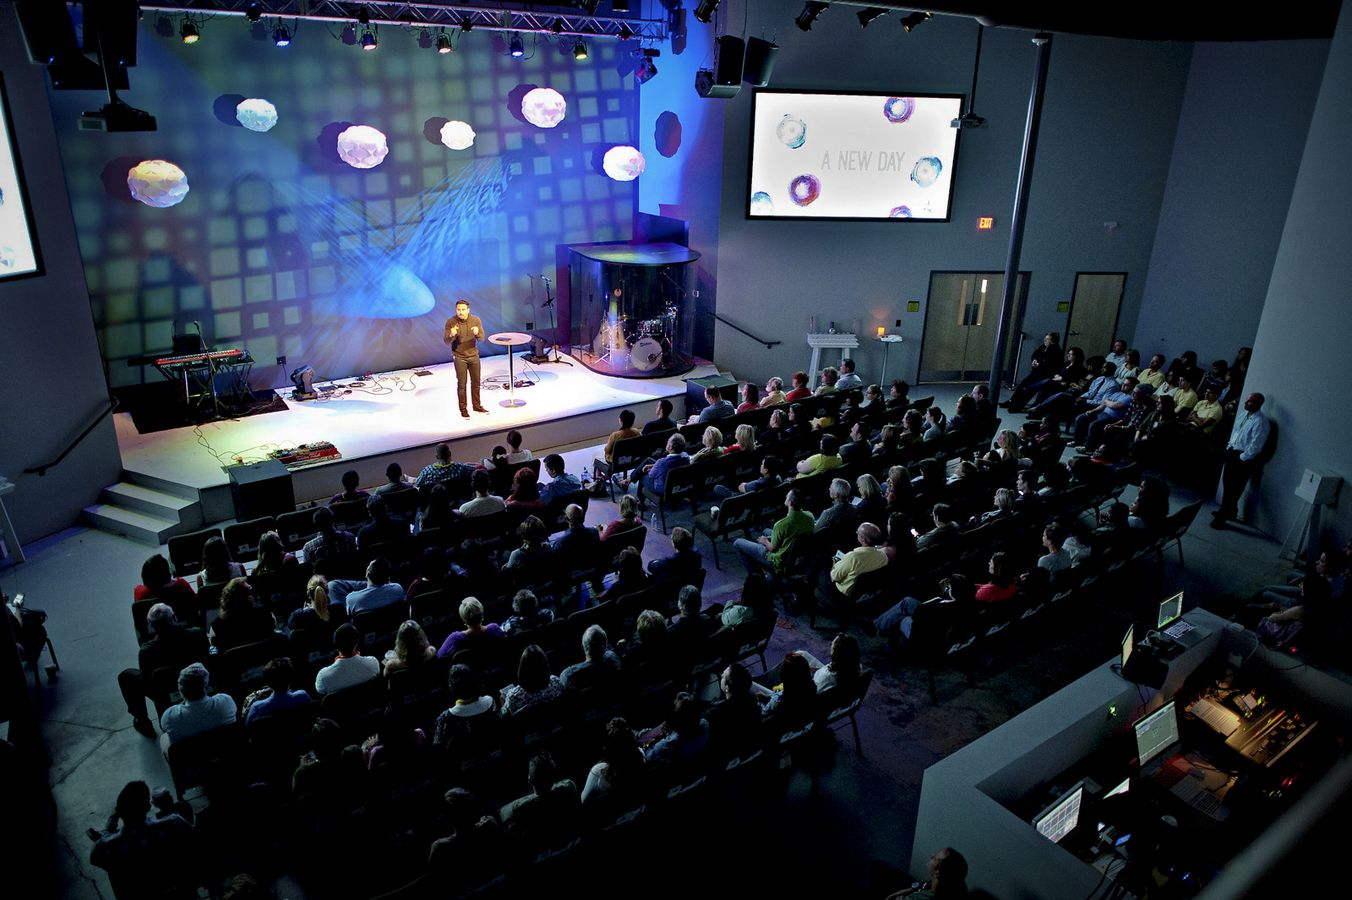 Worship center at mosaic church charlotte nc designed - Interior design firms charlotte nc ...